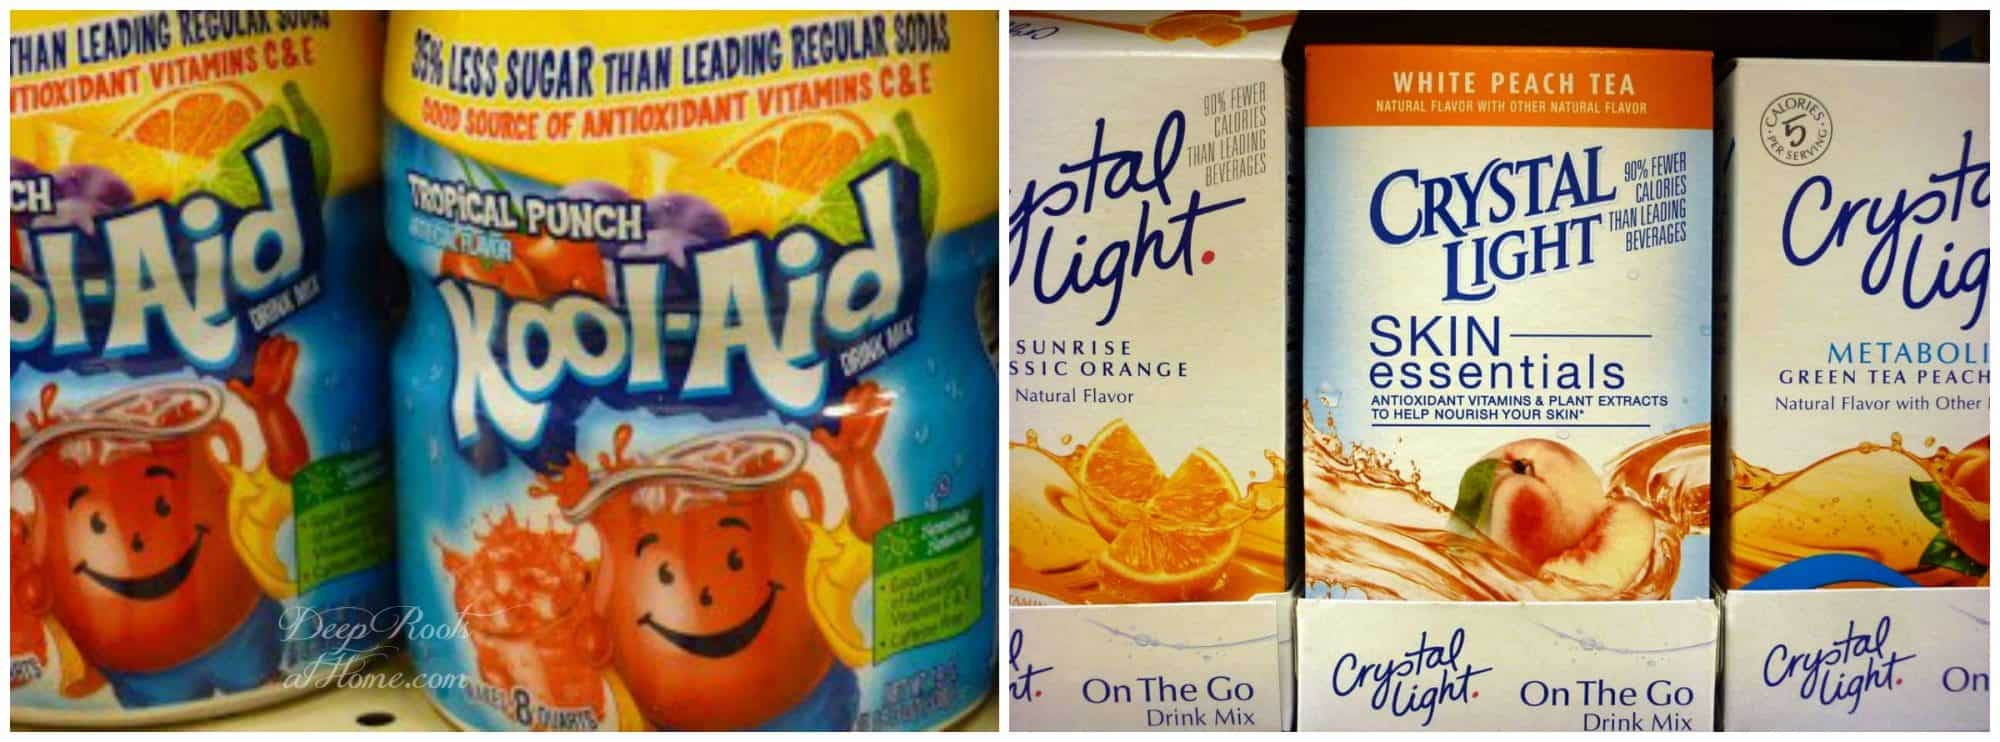 Kool-Aid punch and Crystal Light